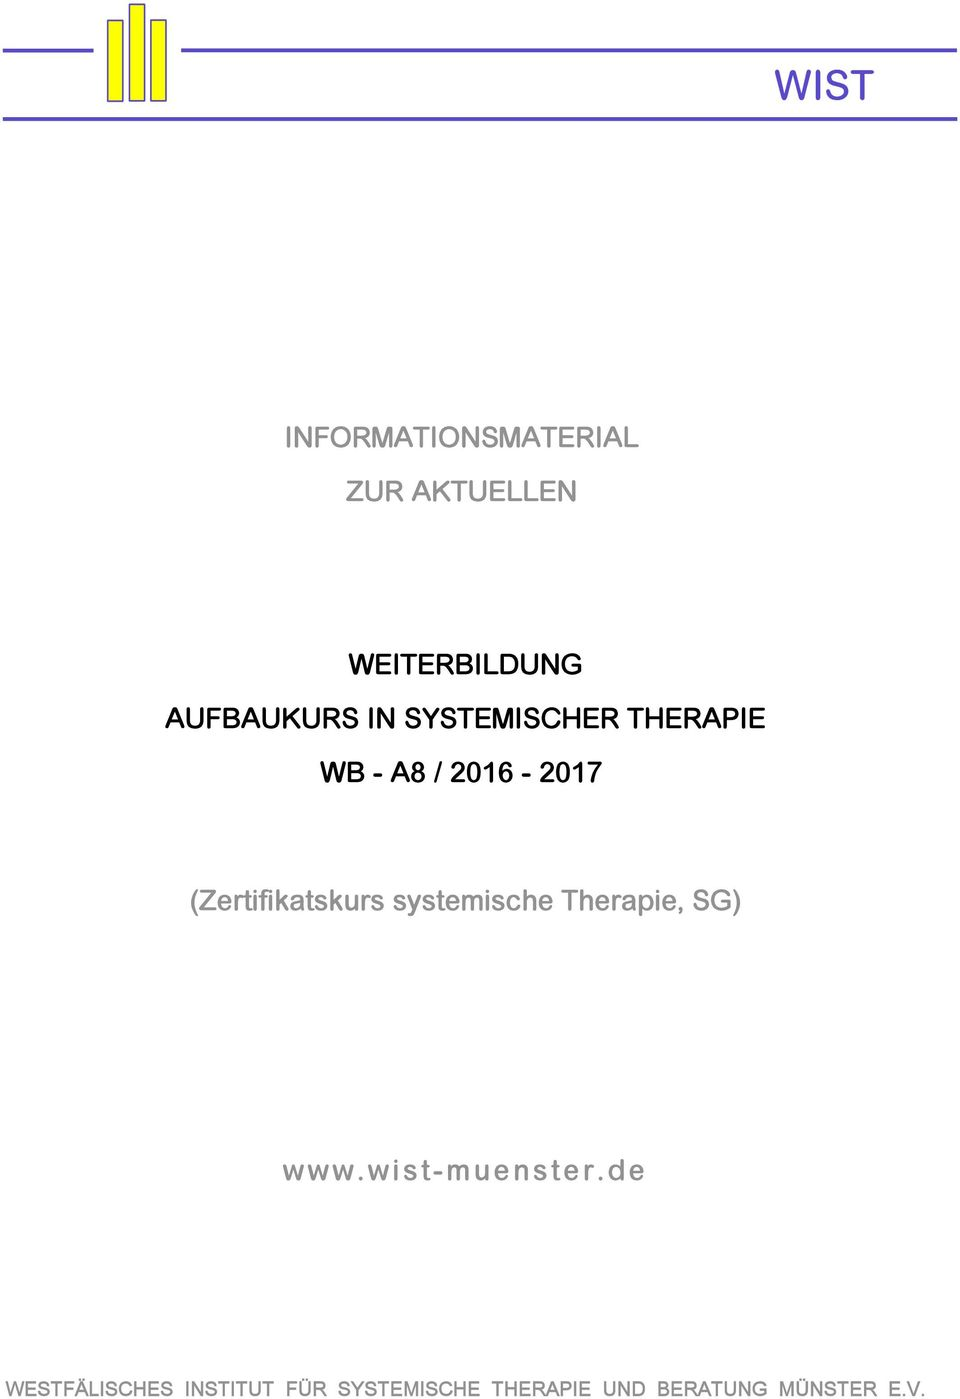 THERAPIE WB - A8 / 2016-2017